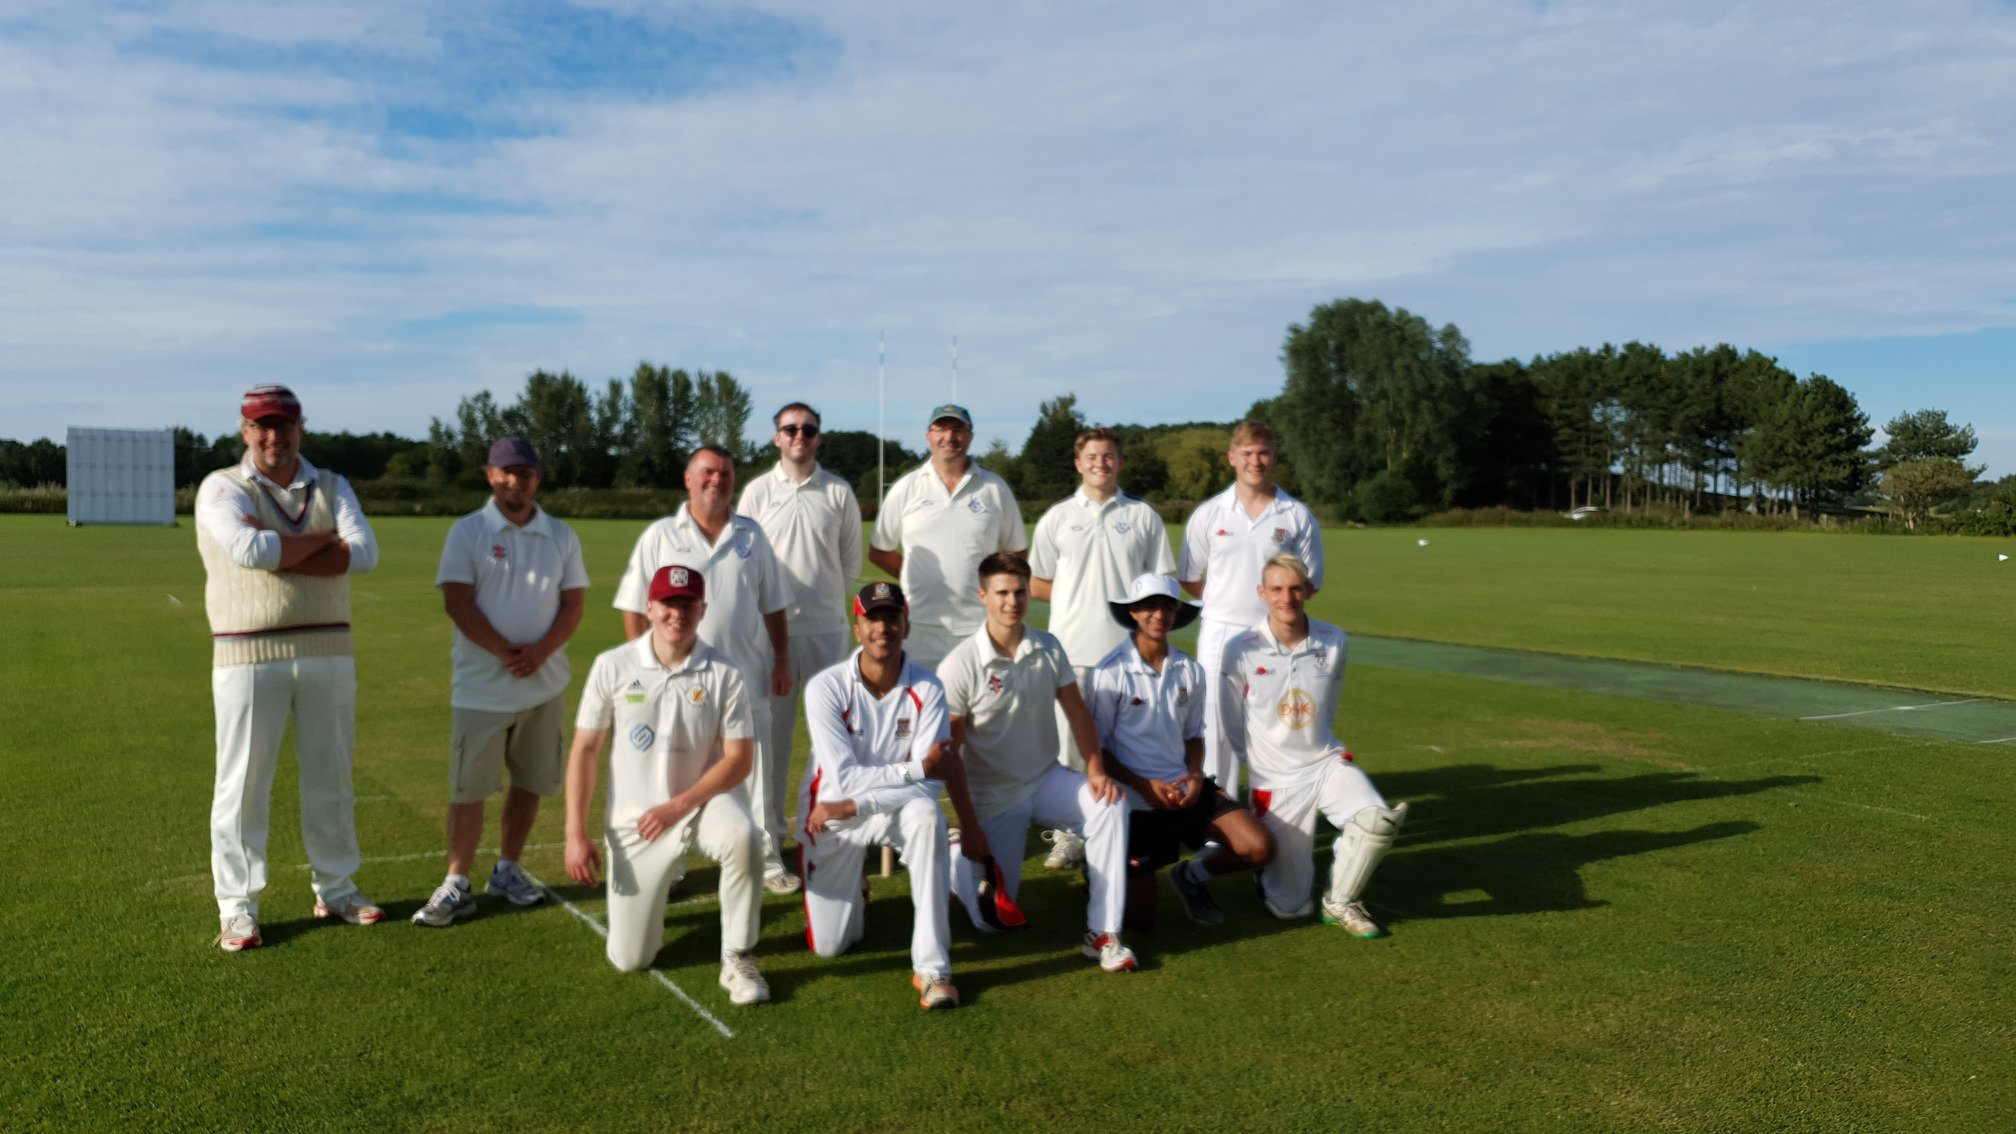 Martin Wynne-Jones Trophy 2020 cricket match